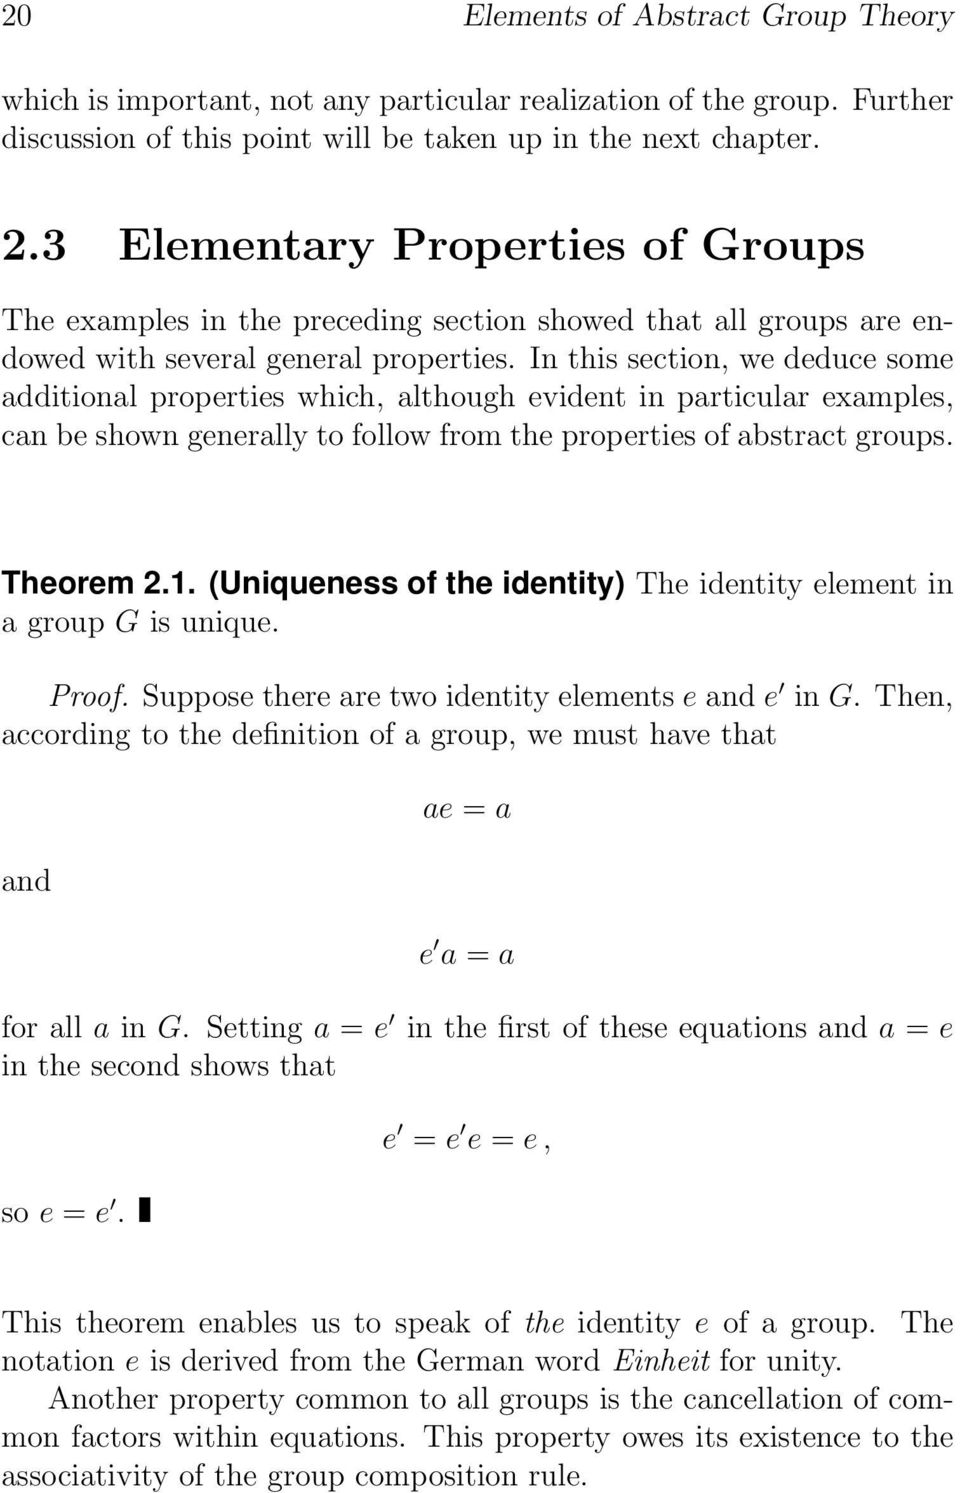 In this section, we deduce some additional properties which, although evident in particular examples, can be shown generally to follow from the properties of abstract groups. Theorem 2.